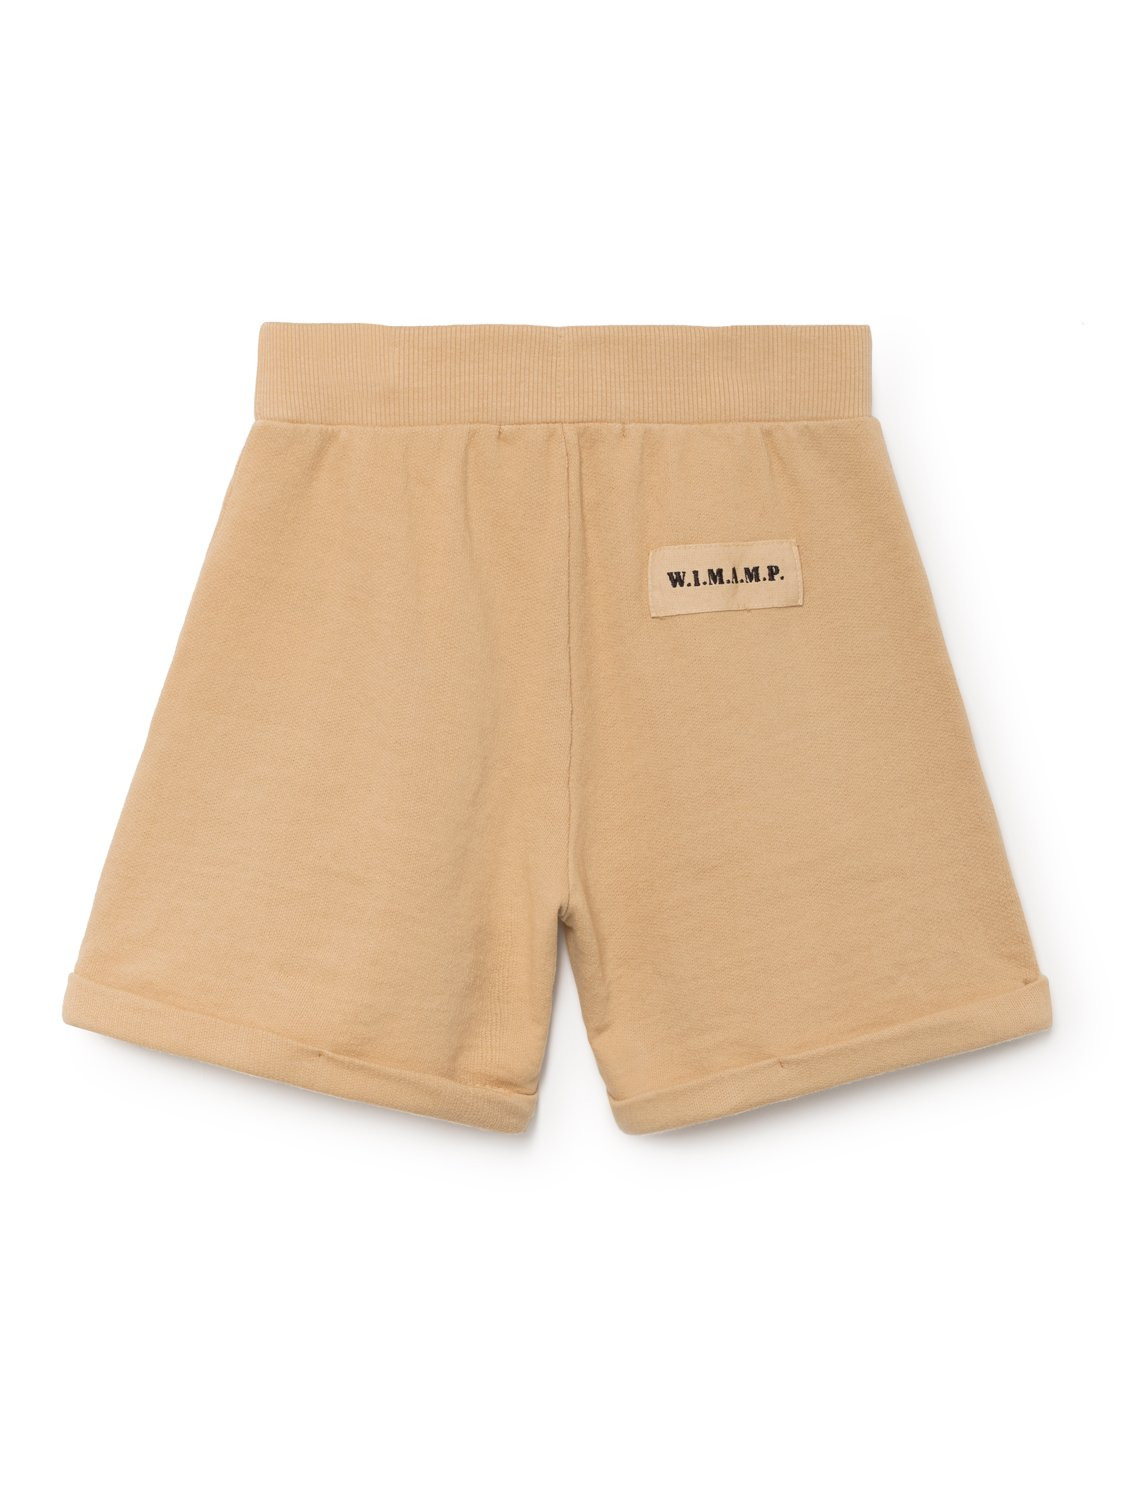 W.I.M.A.M.P. Brown Shorts